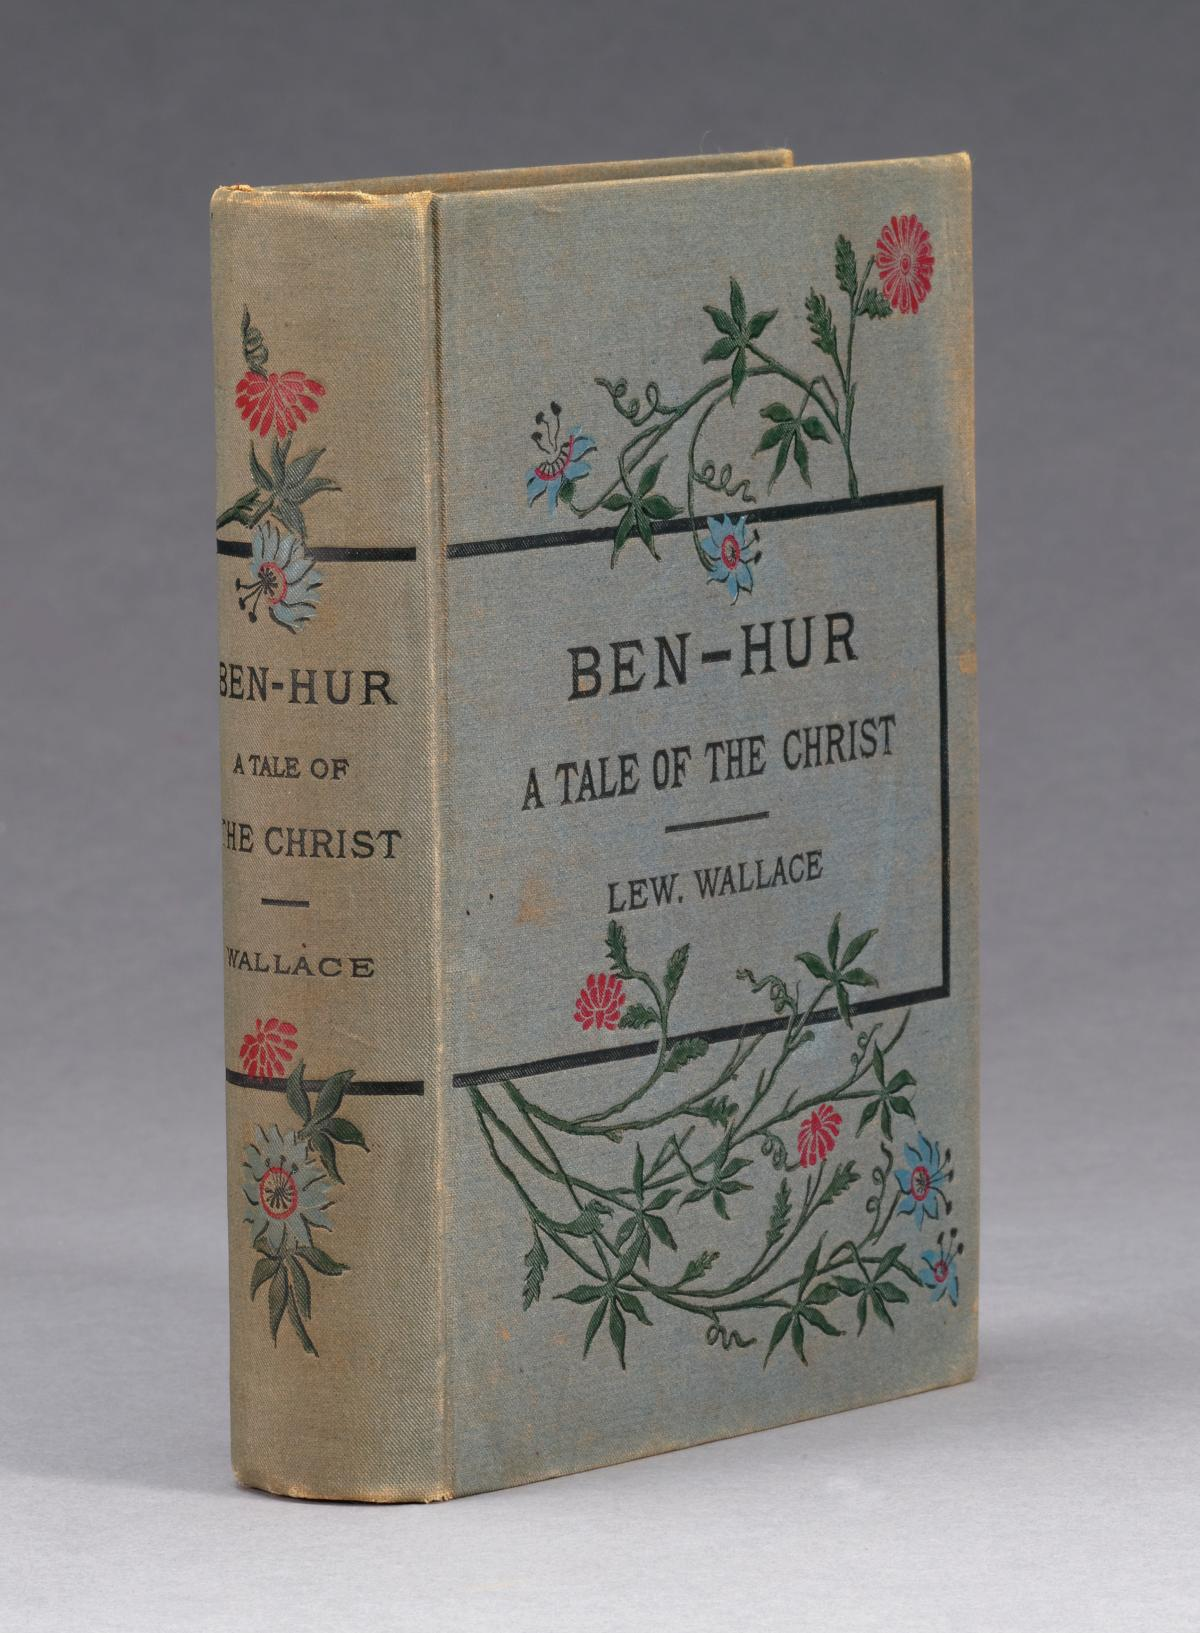 Cream colored cover and spine, decorated with twining vines and flowers, which border the title and author text